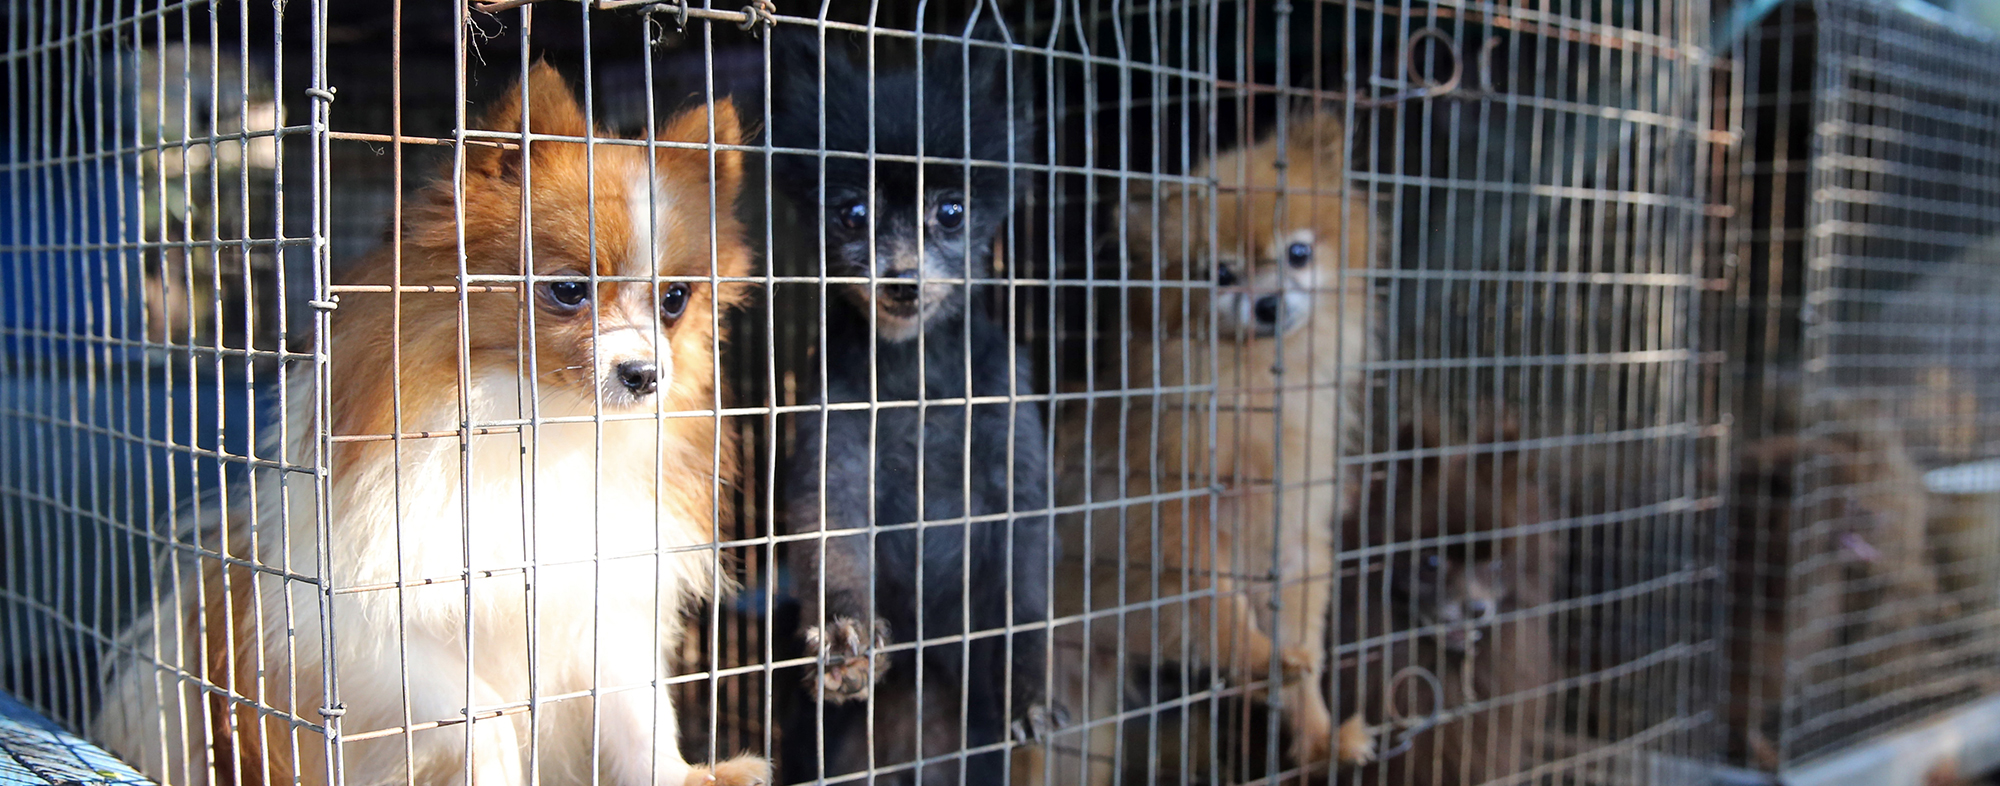 Puppy mill research   The Humane Society of the United States